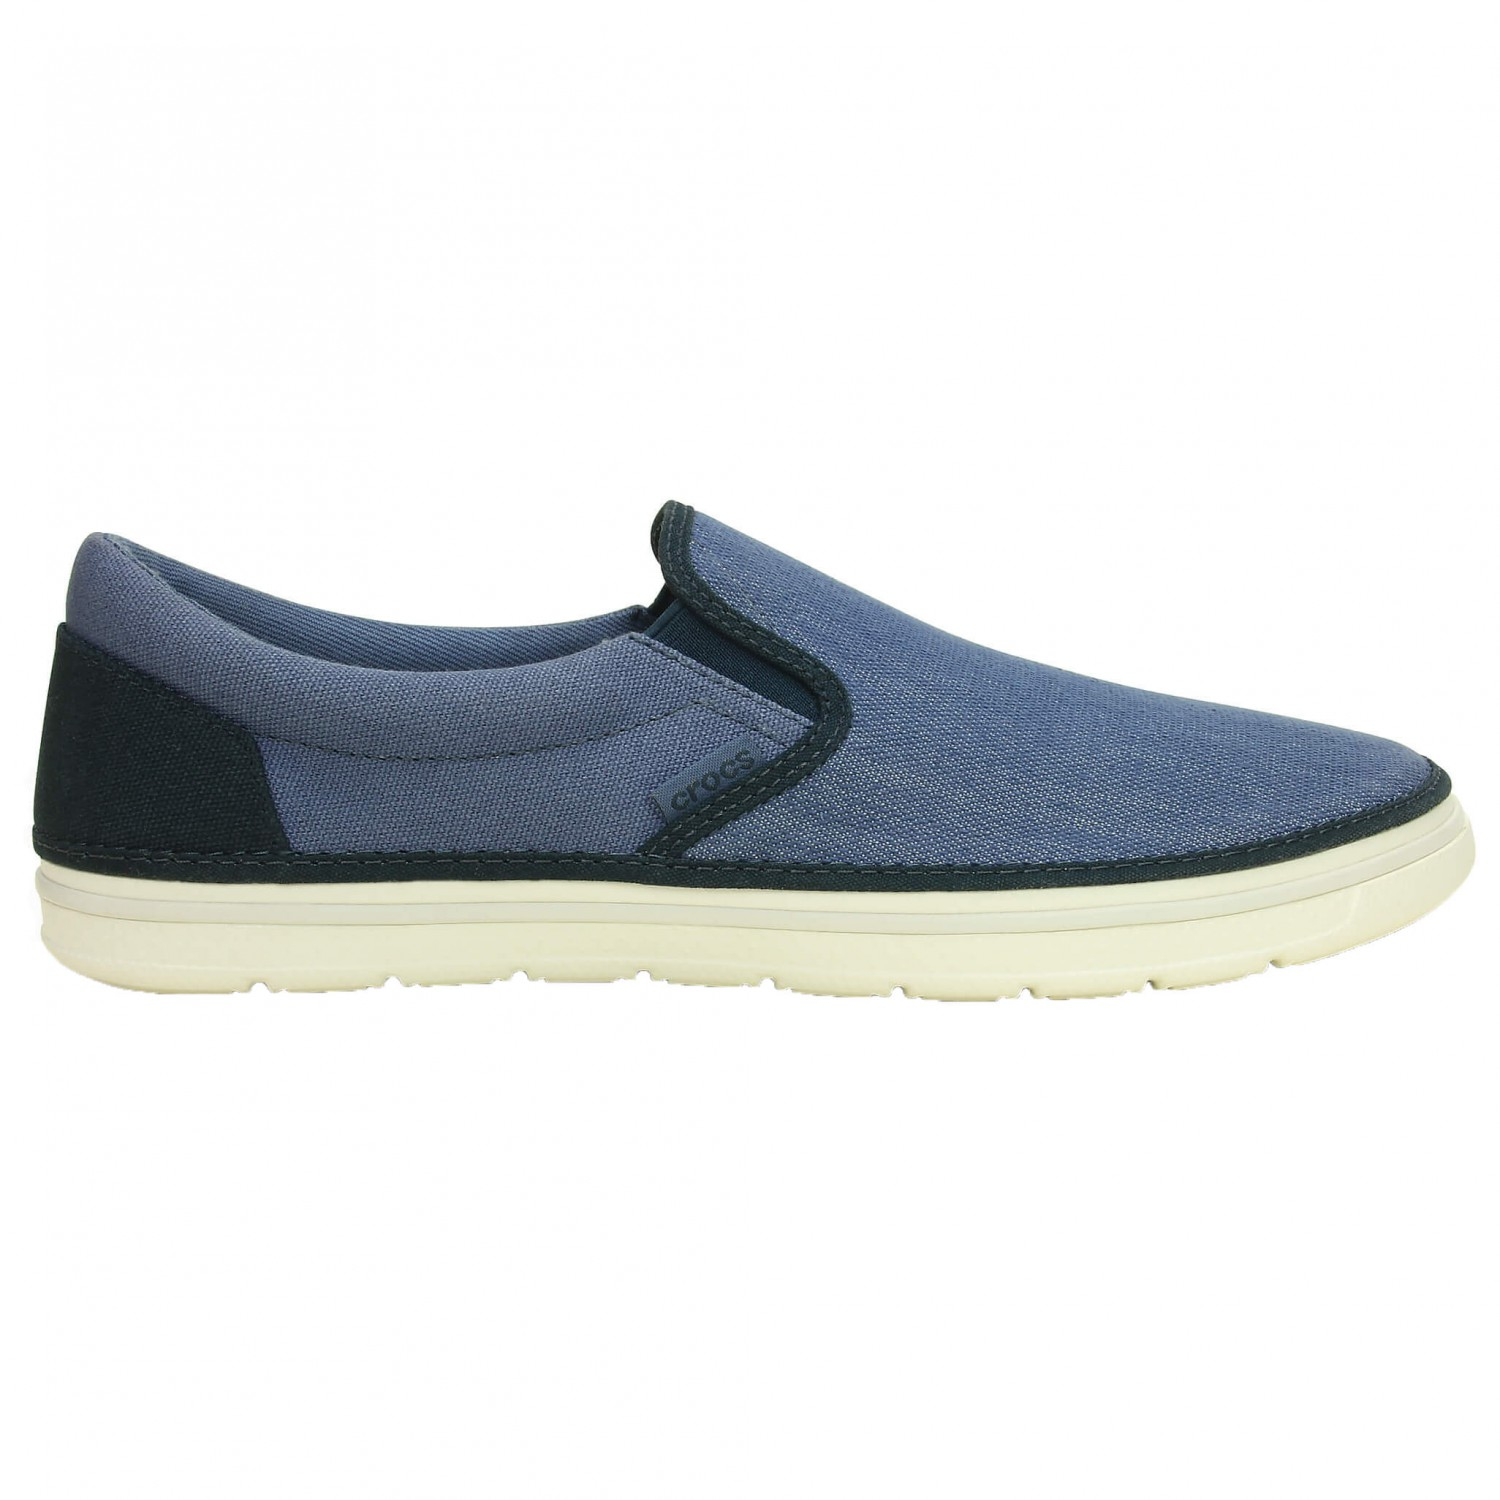 crocs norlin canvas slip on slip on shoes s buy